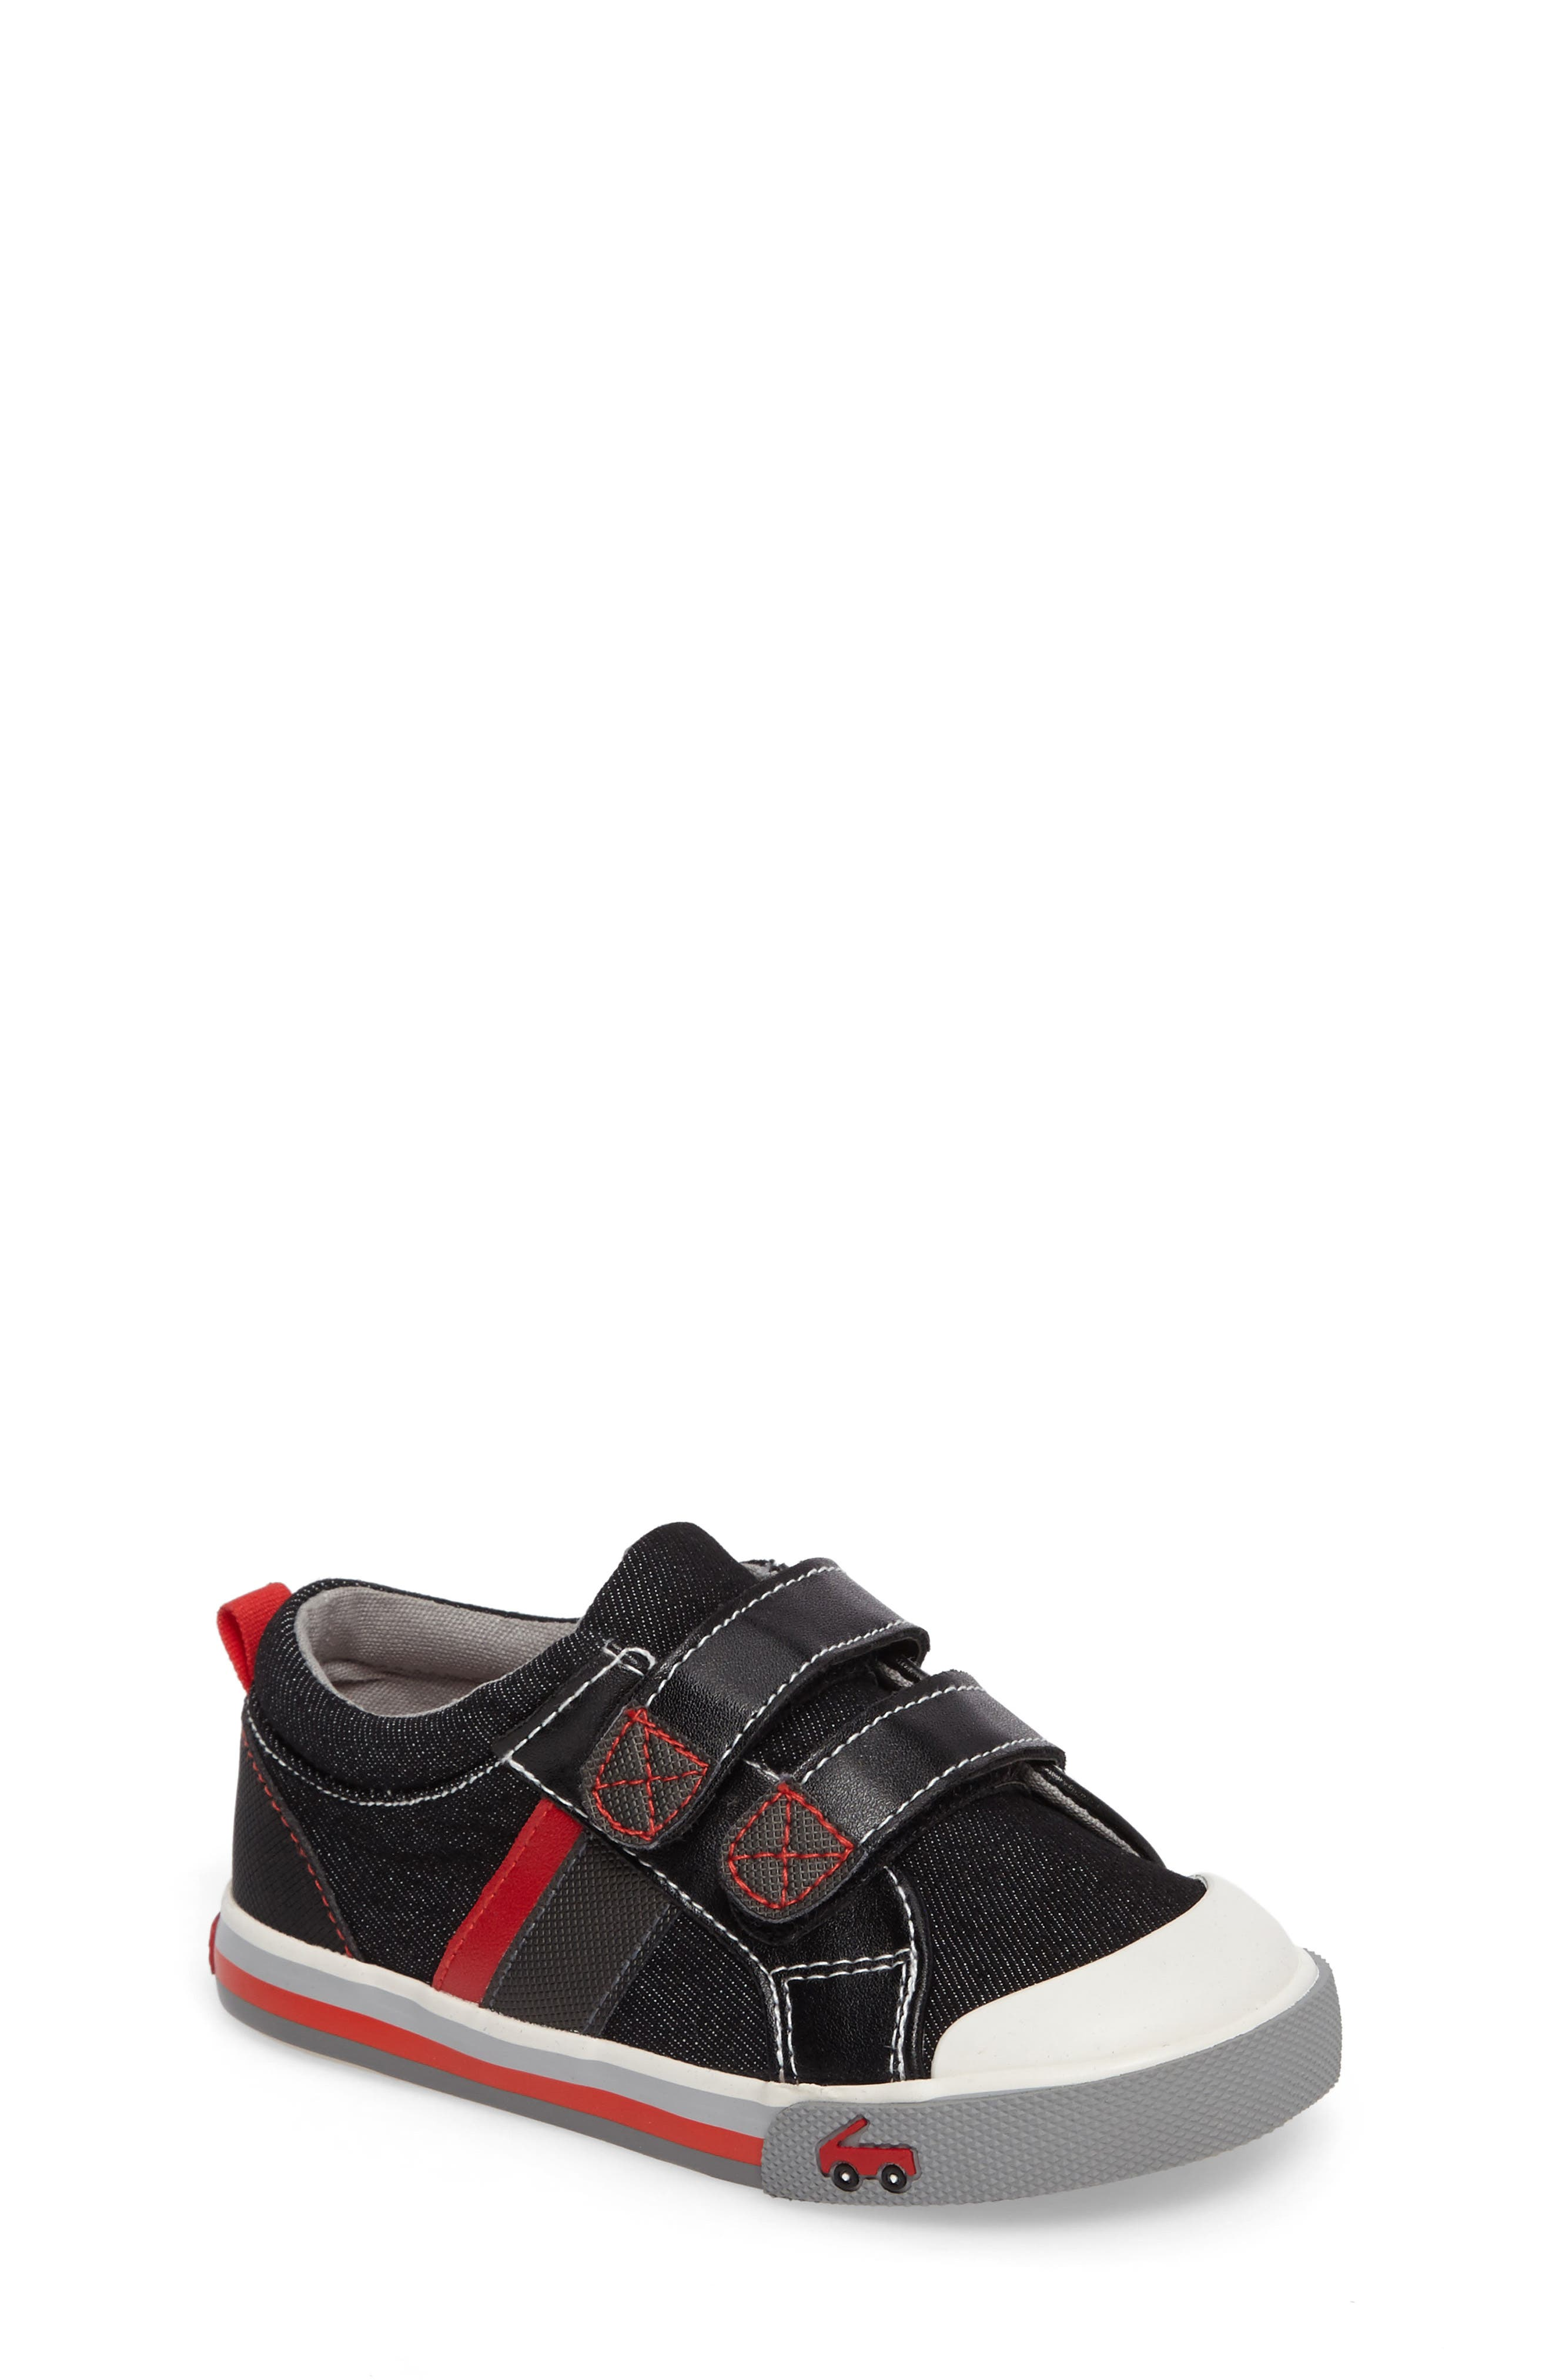 'Russell' Sneaker,                             Main thumbnail 1, color,                             003